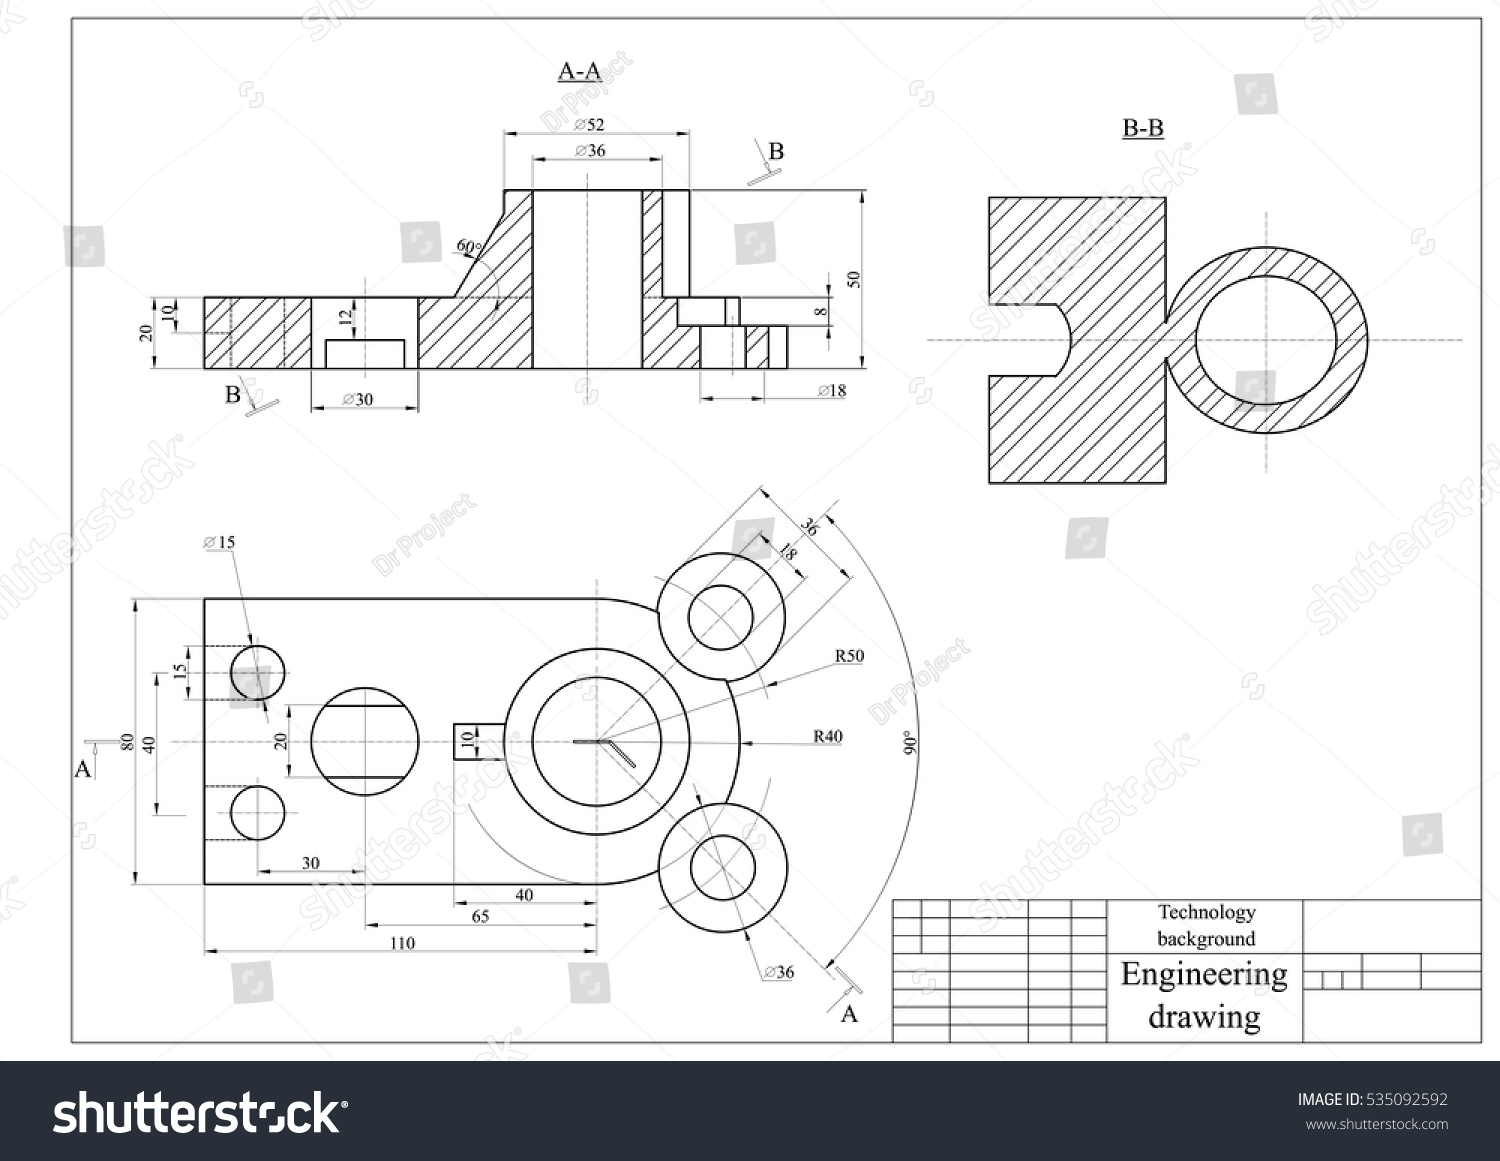 Engineering drawing mechanics blueprints vector technology for Engineering blueprints